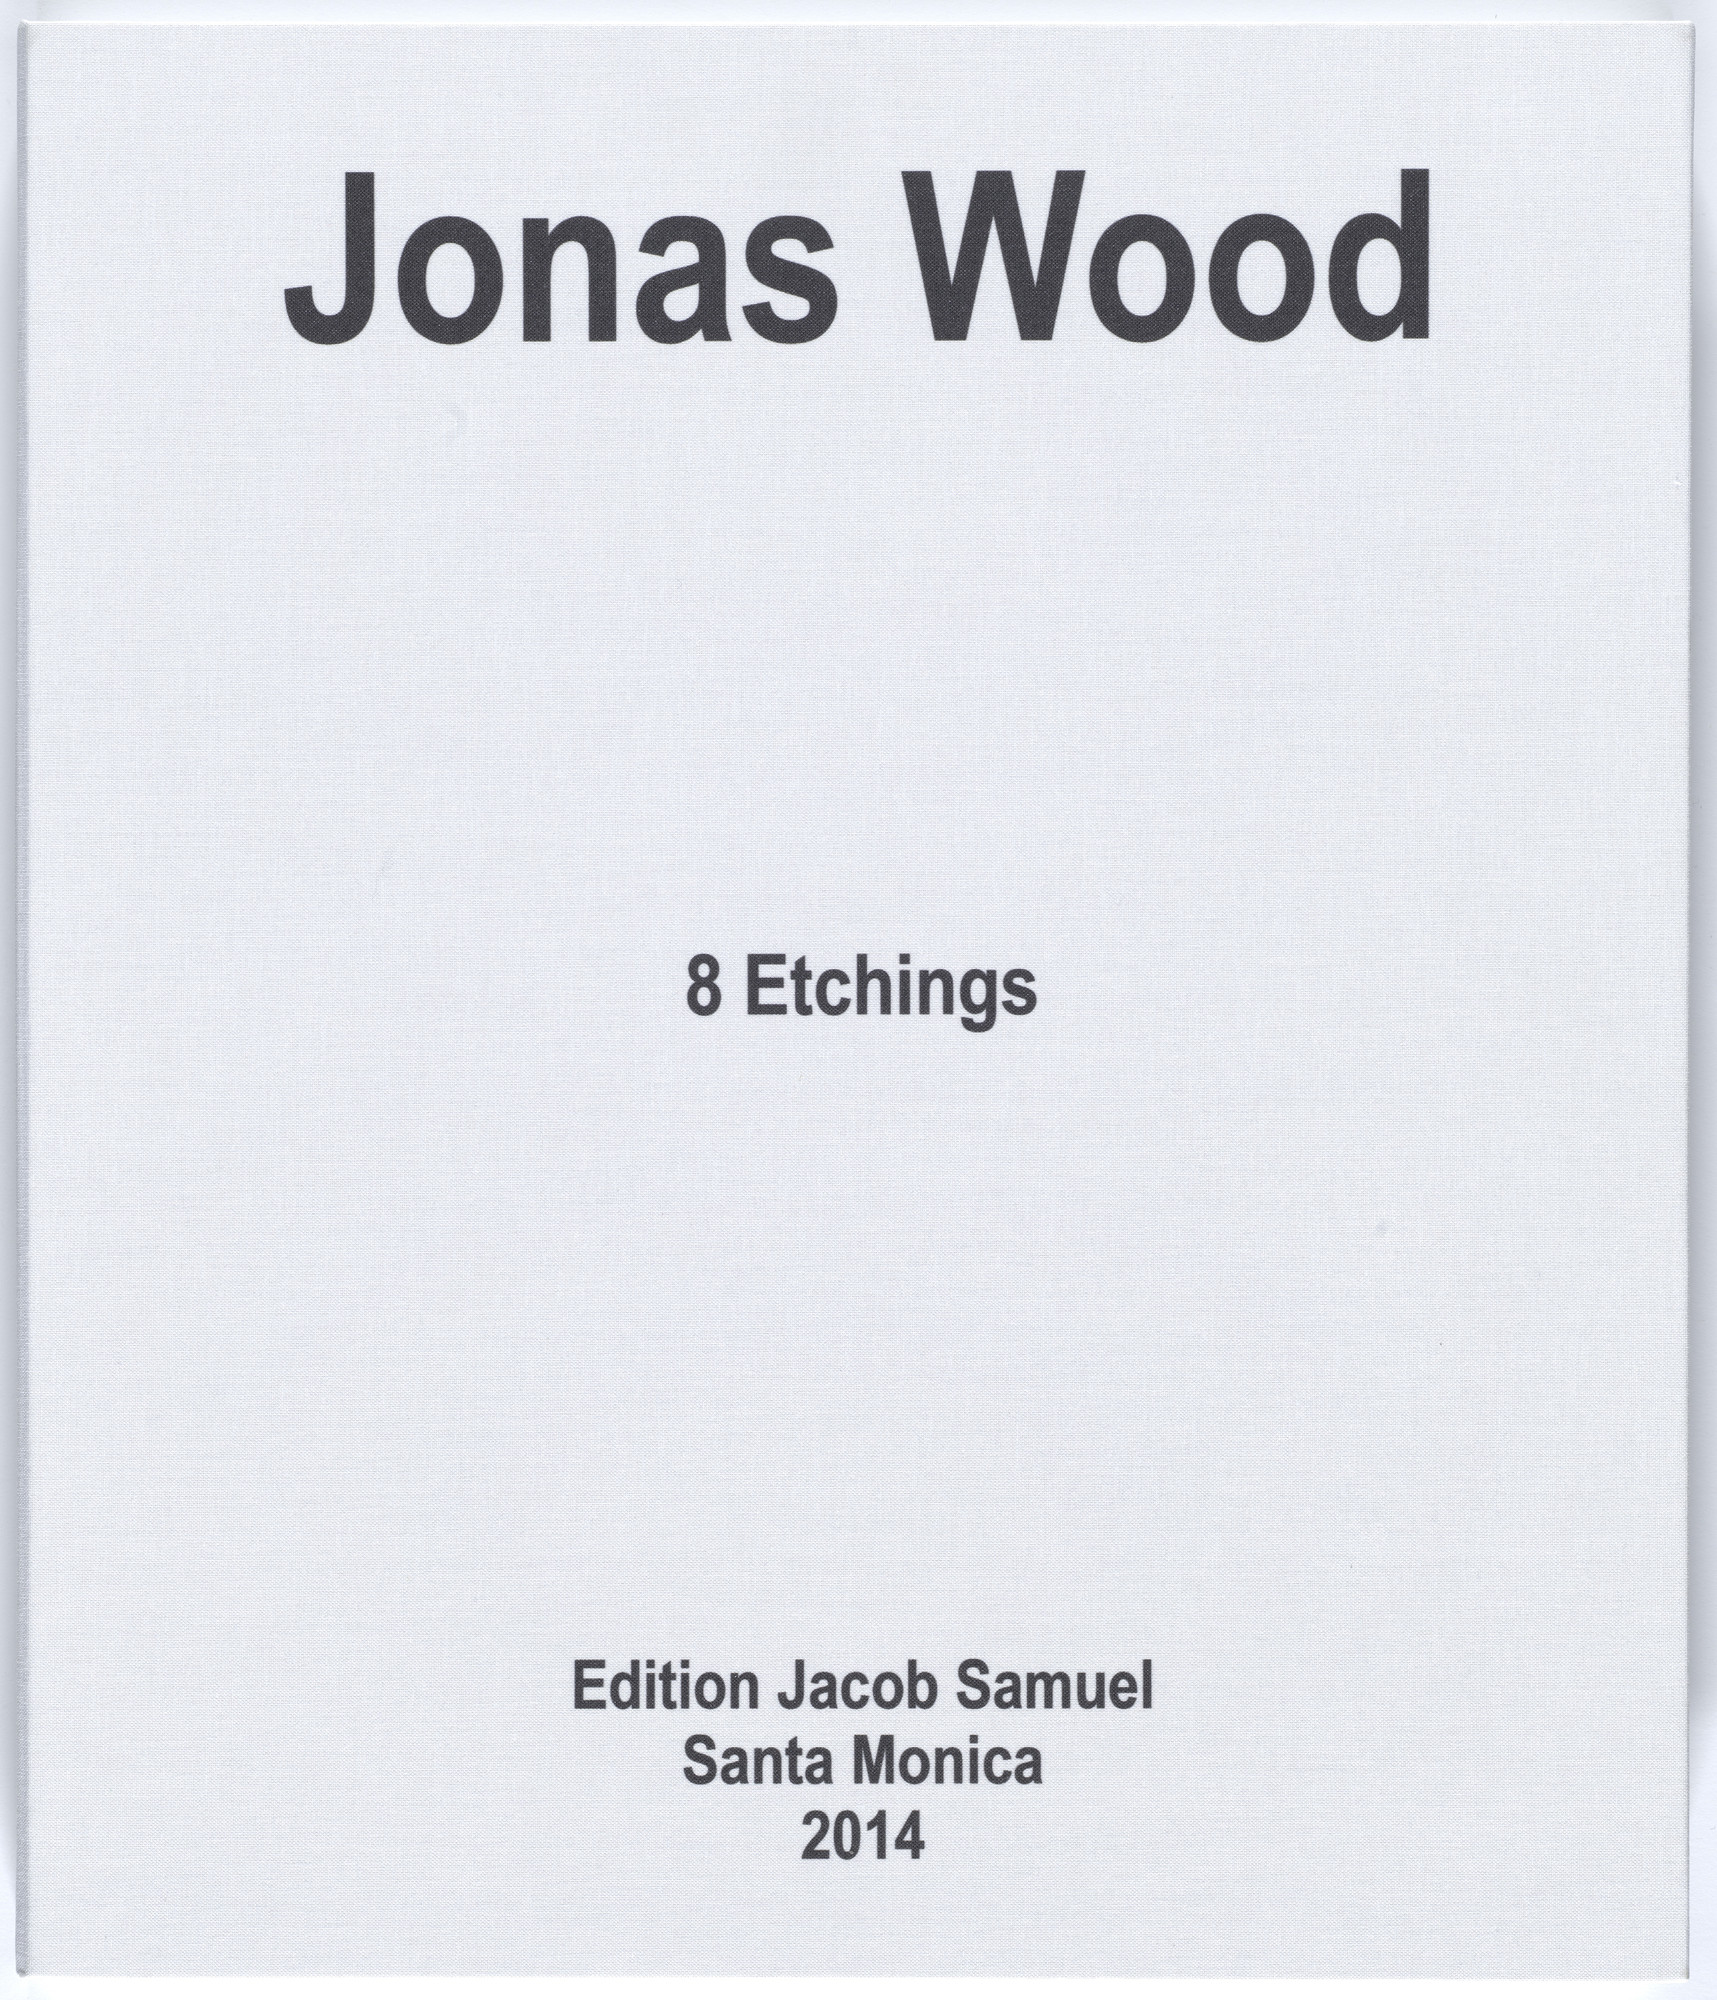 Jonas Wood. Eight Etchings. 2014